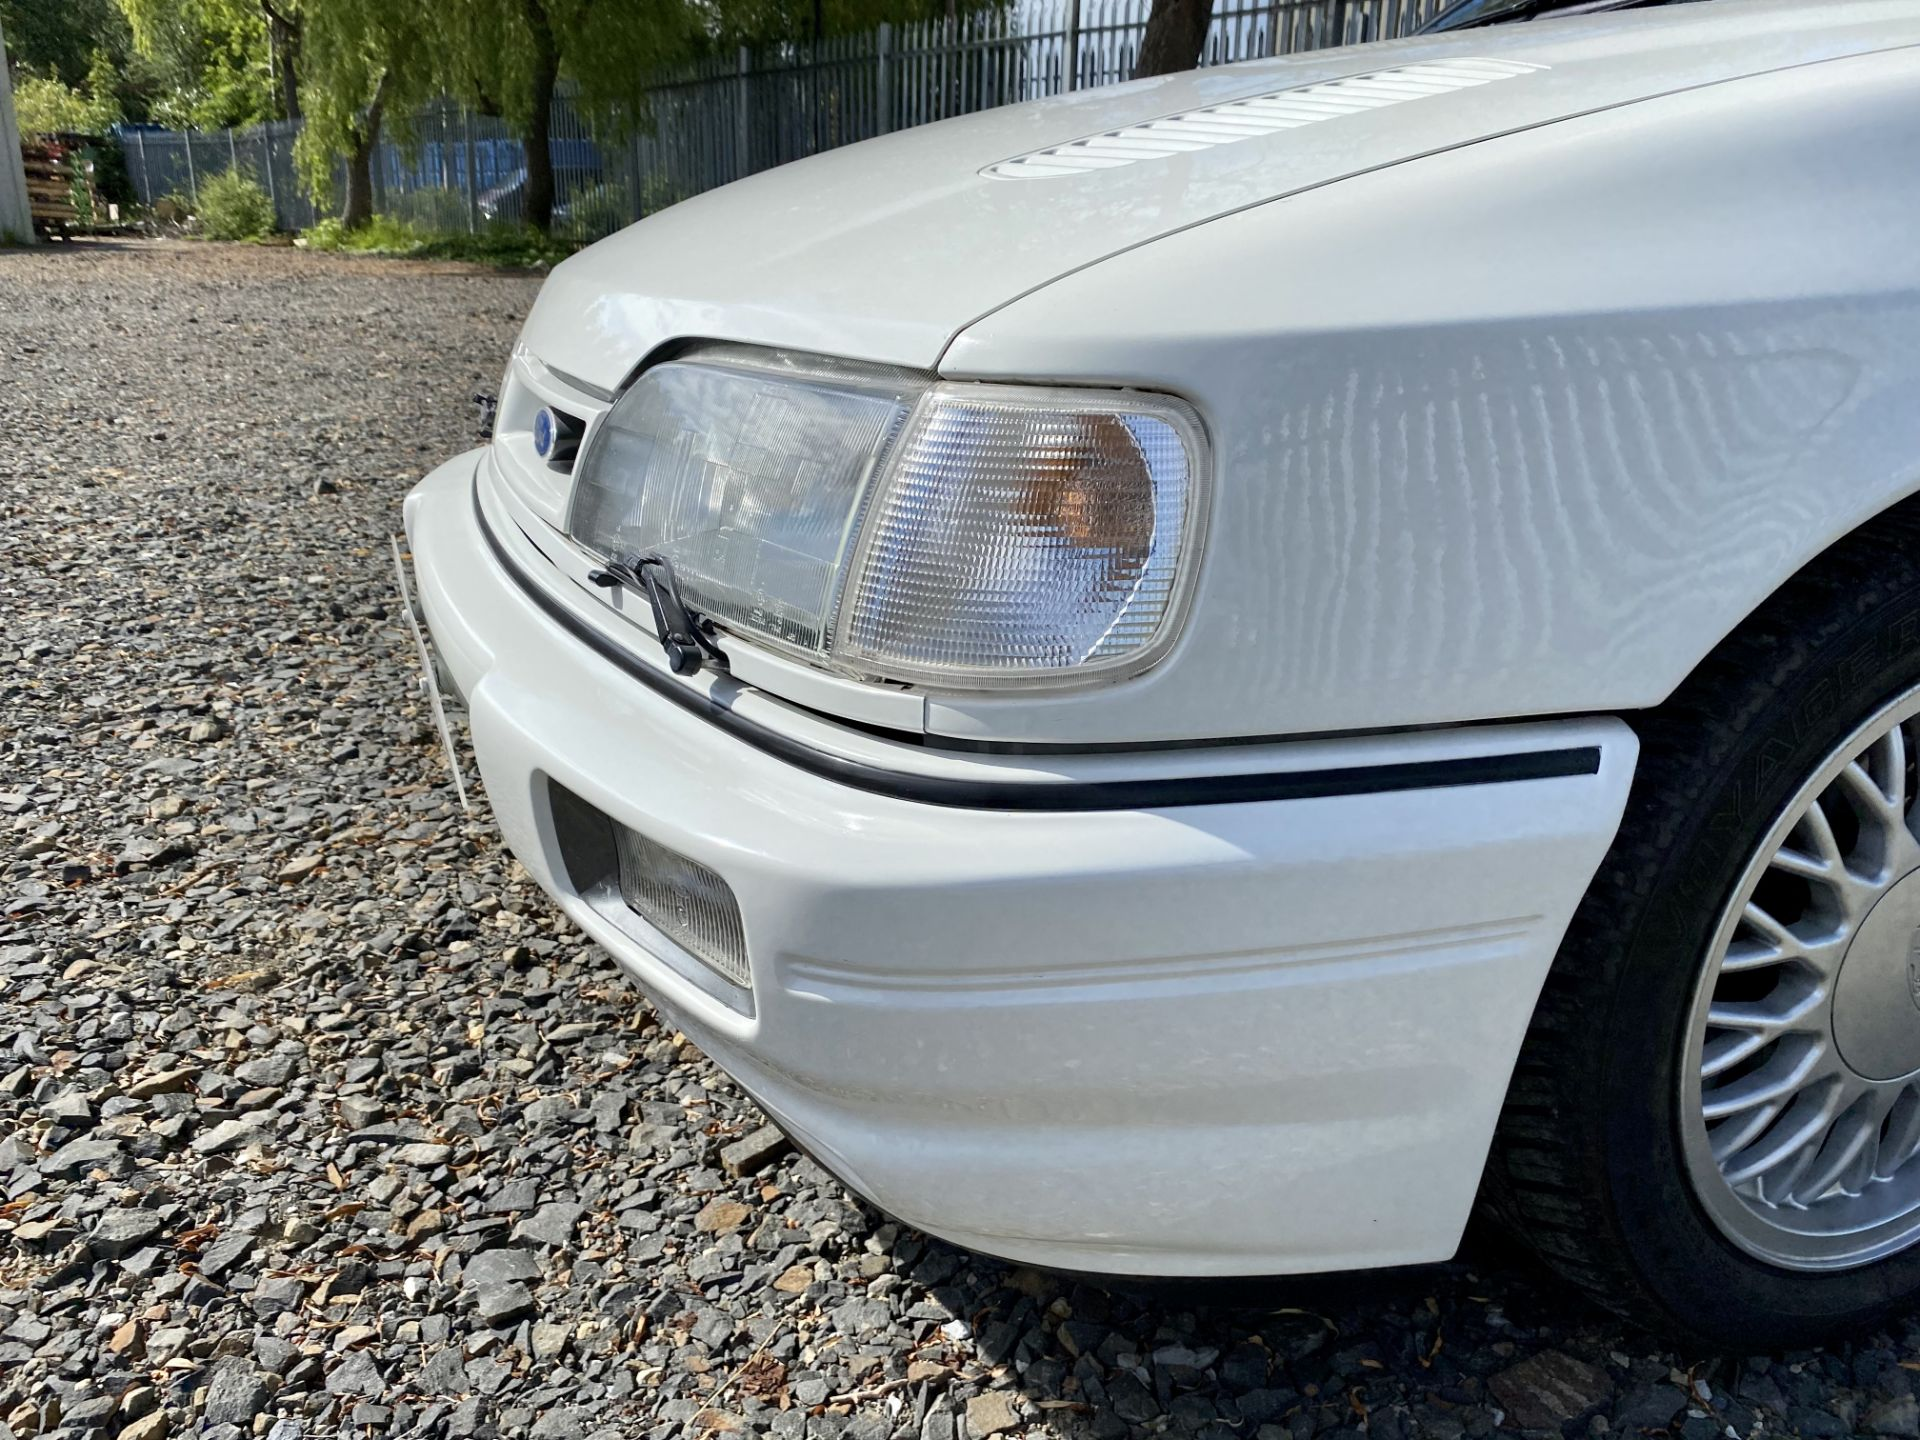 Ford Sierra Sapphire Cosworth 4x4 - Image 25 of 55